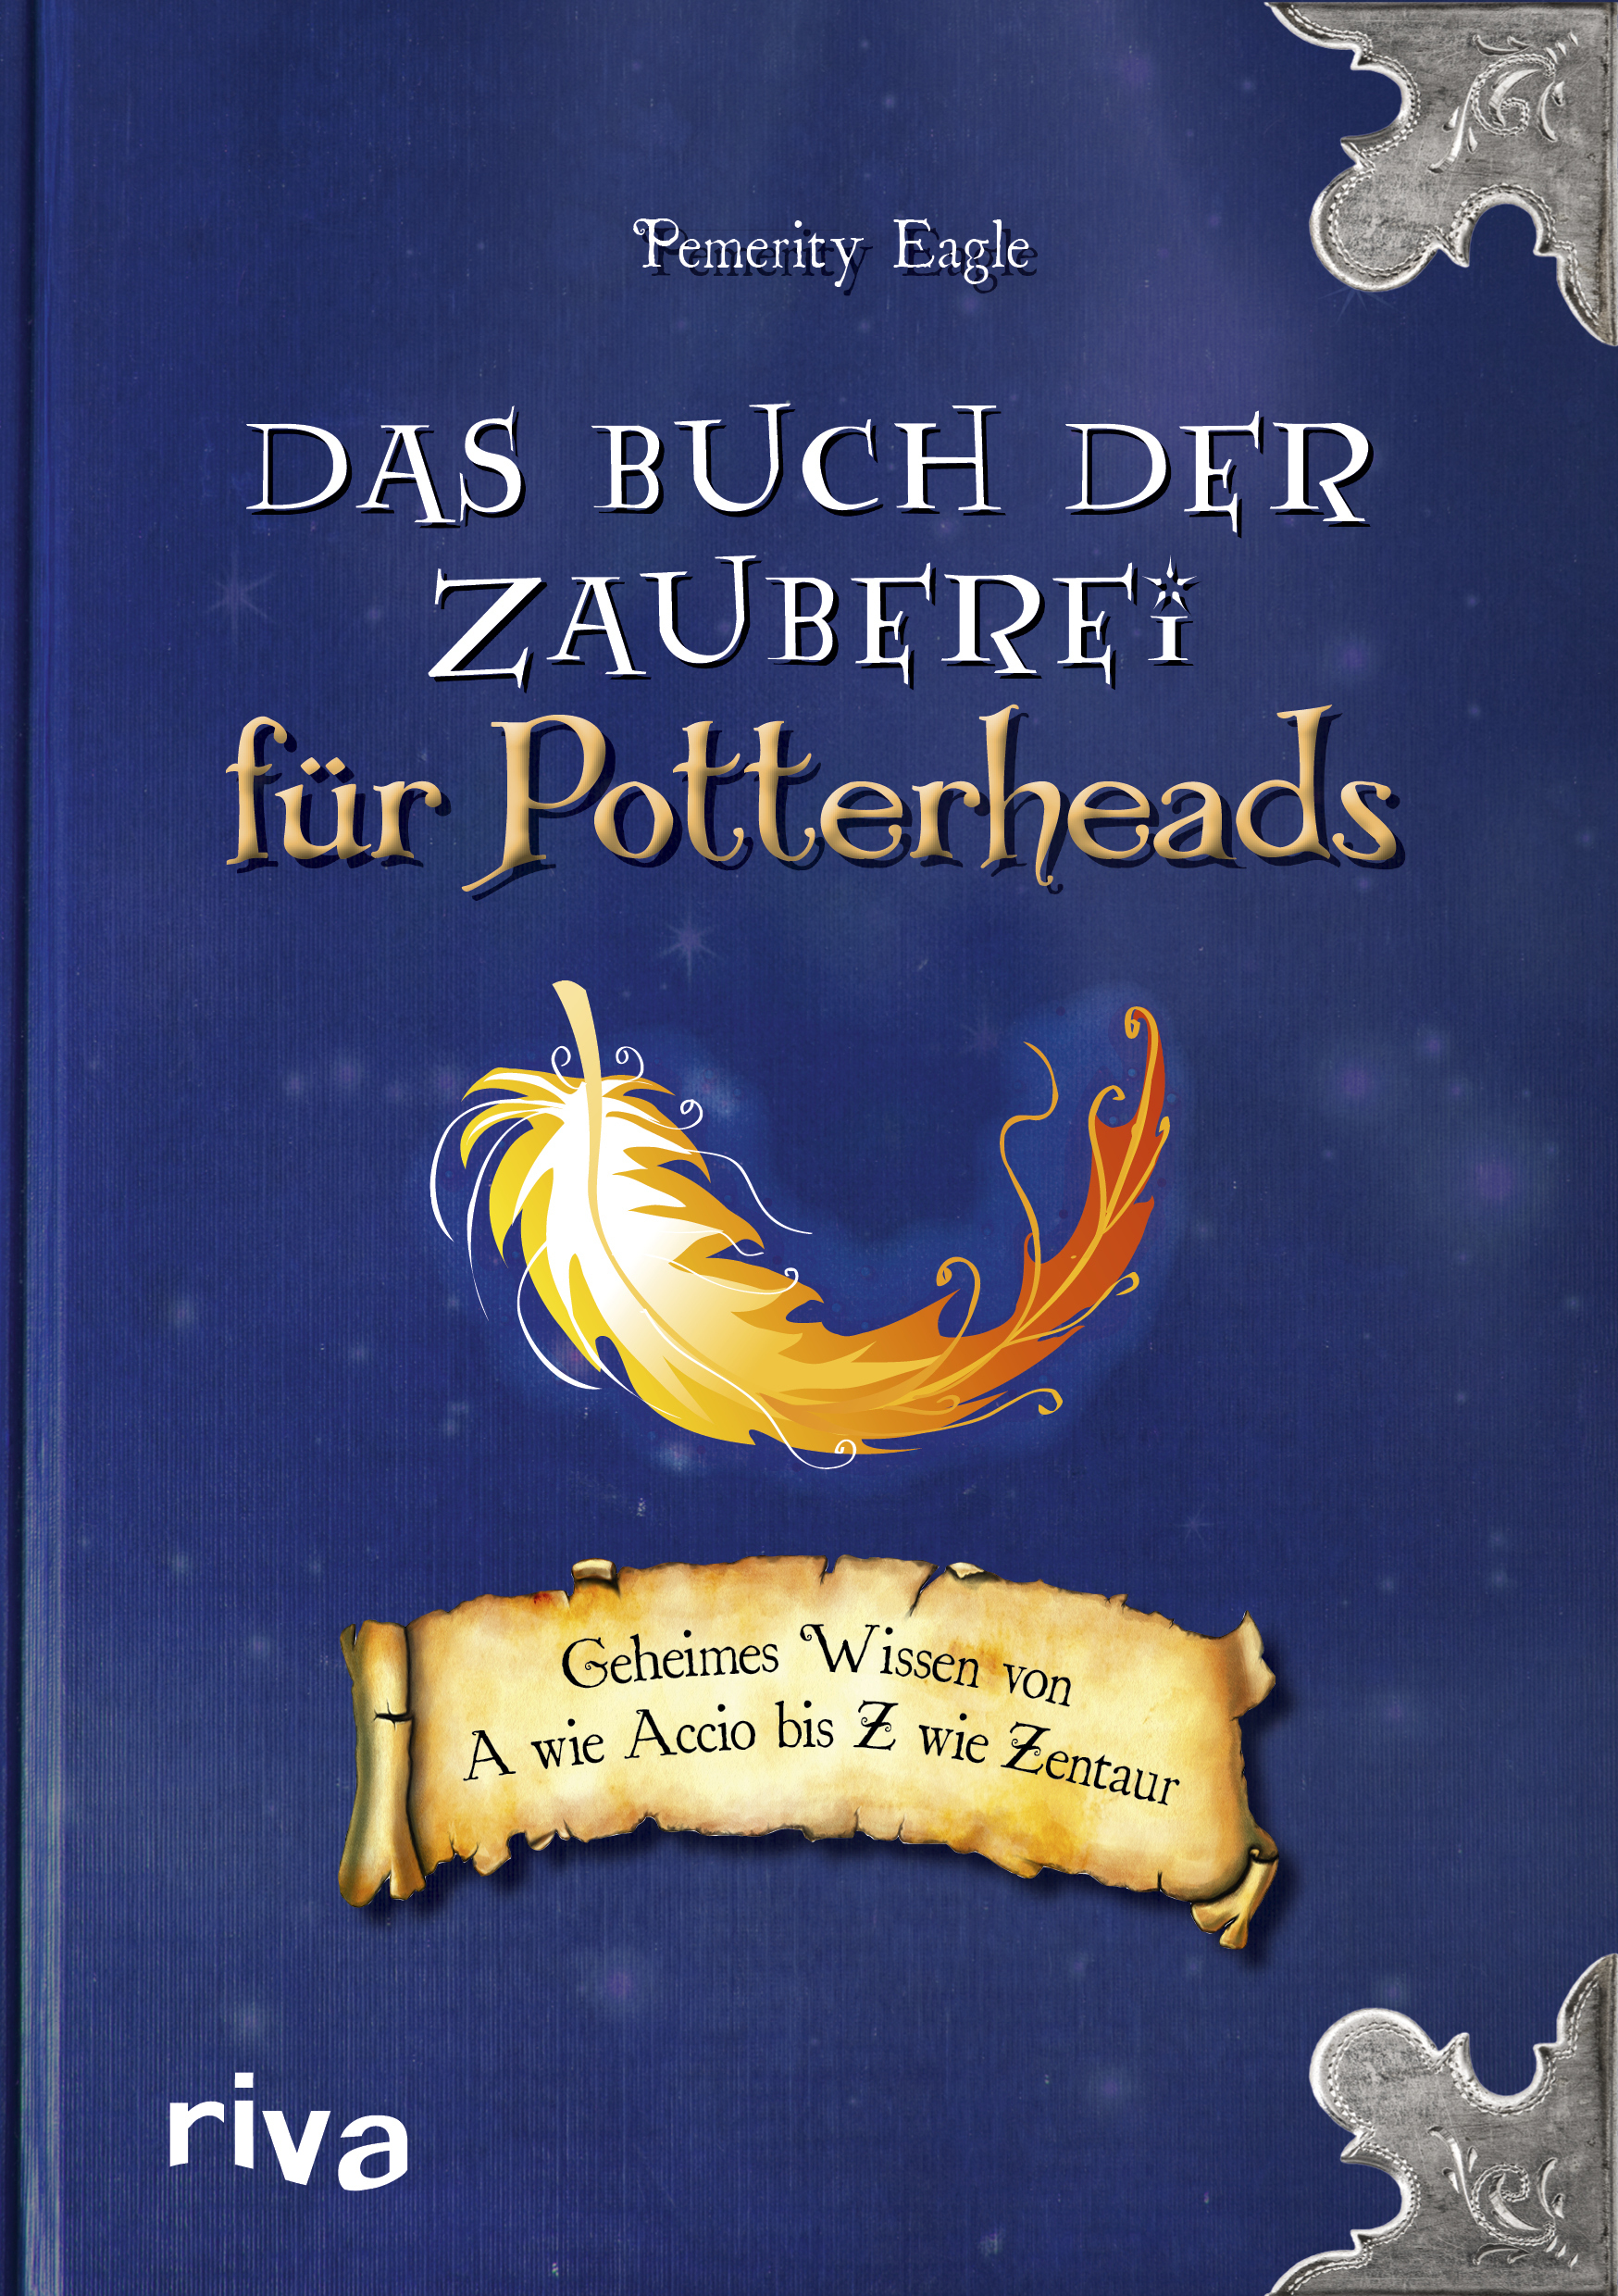 das inoffizielle harry potter buch der zauberei geheimes. Black Bedroom Furniture Sets. Home Design Ideas